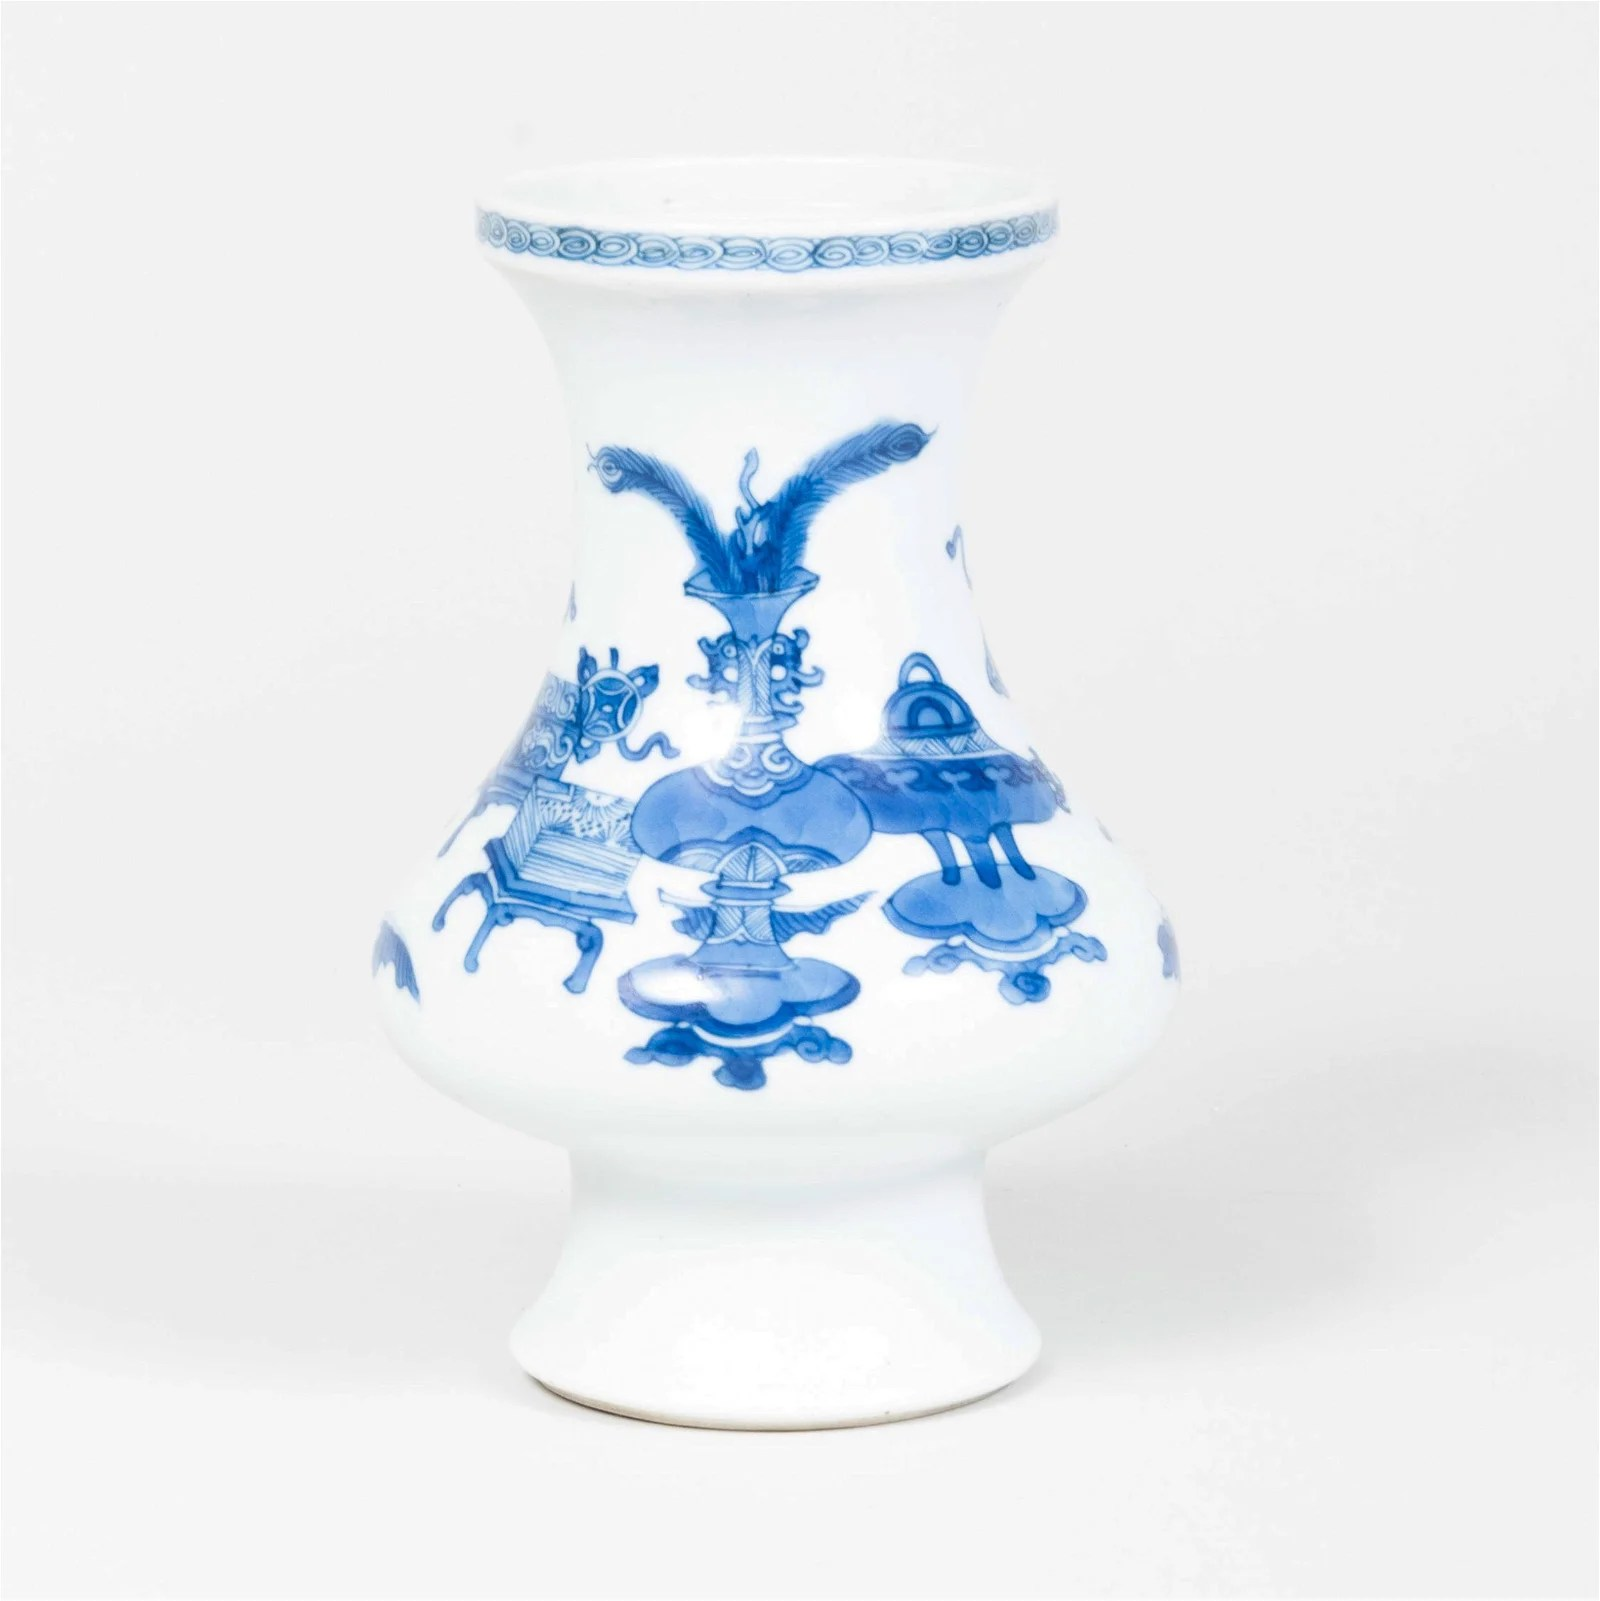 Chinese Blue and White Porcelain Vase Decorated with